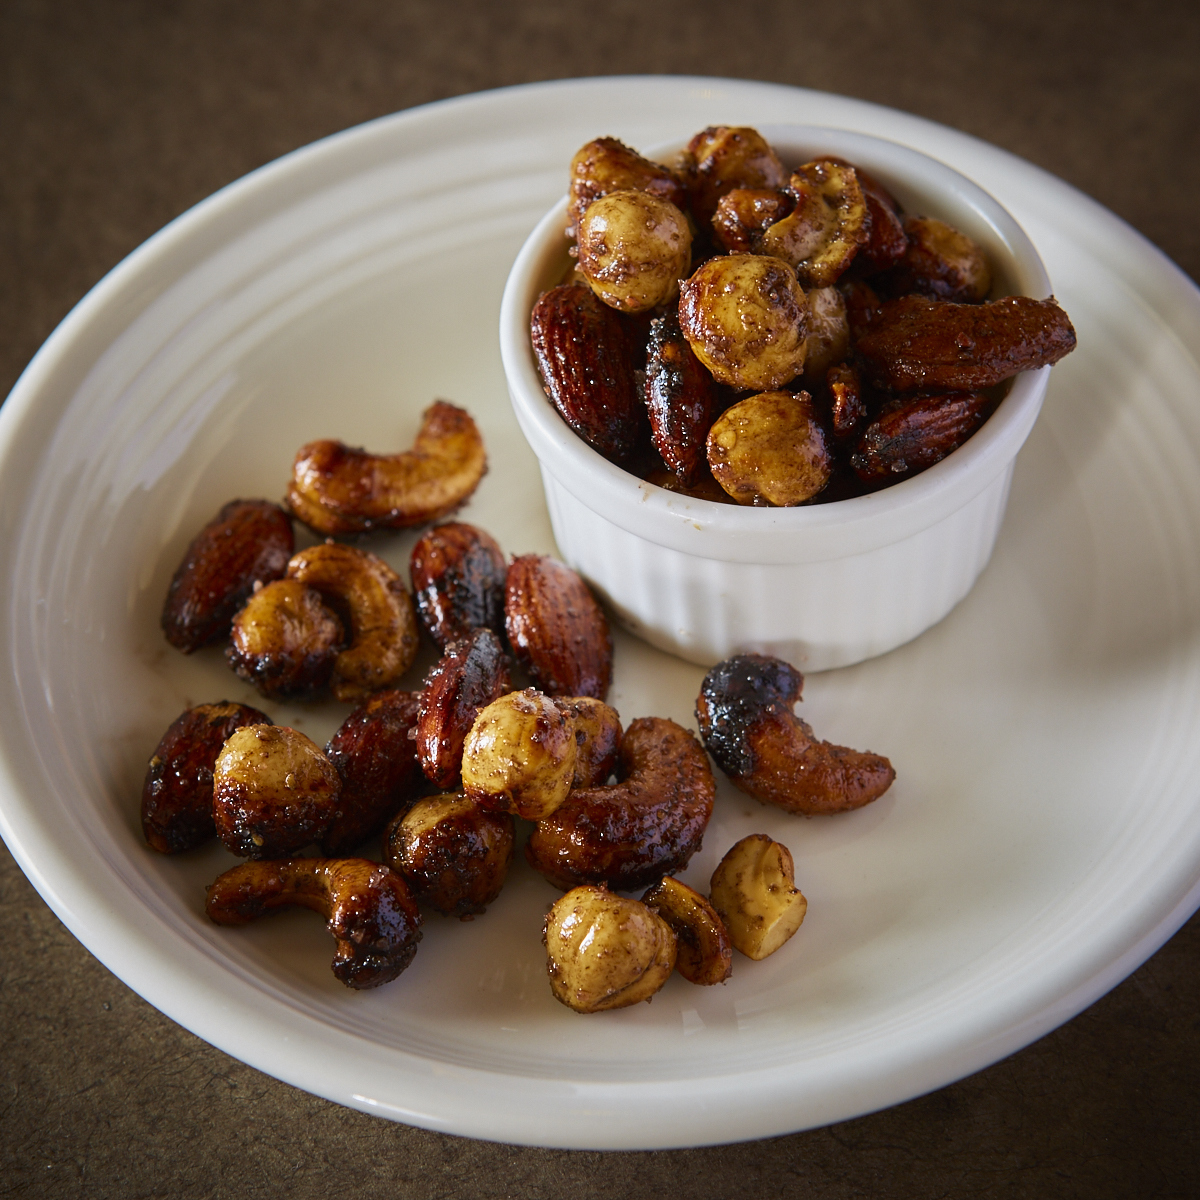 ■ Homemade roast nuts scented with truffle